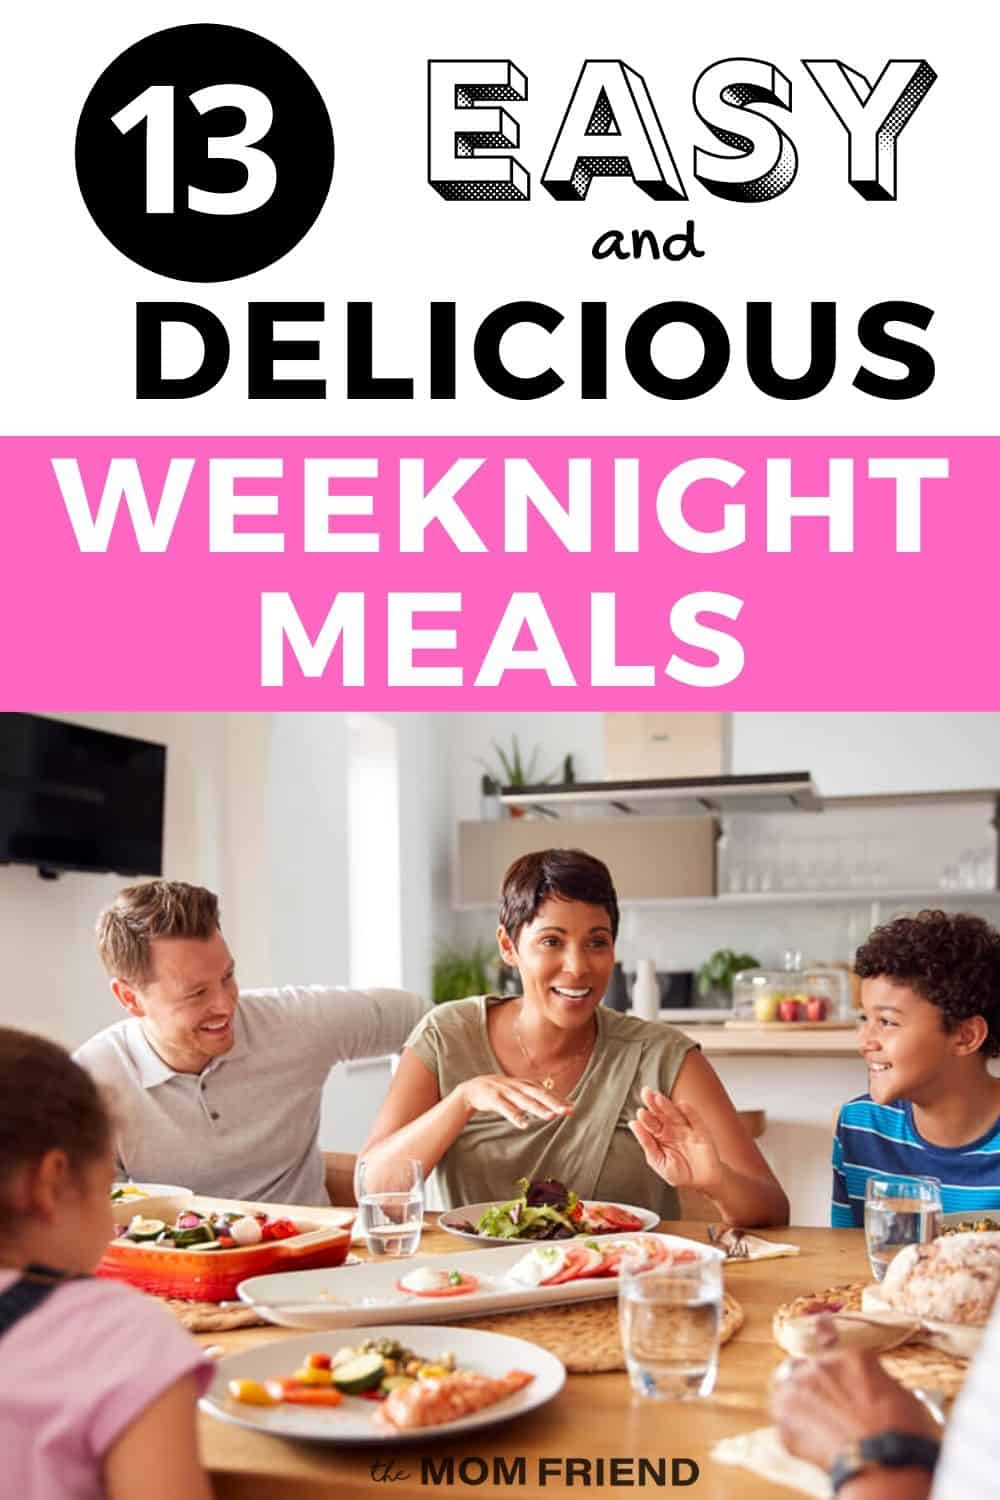 picture of family eating dinner and text 13 easy and delicious weeknight meals